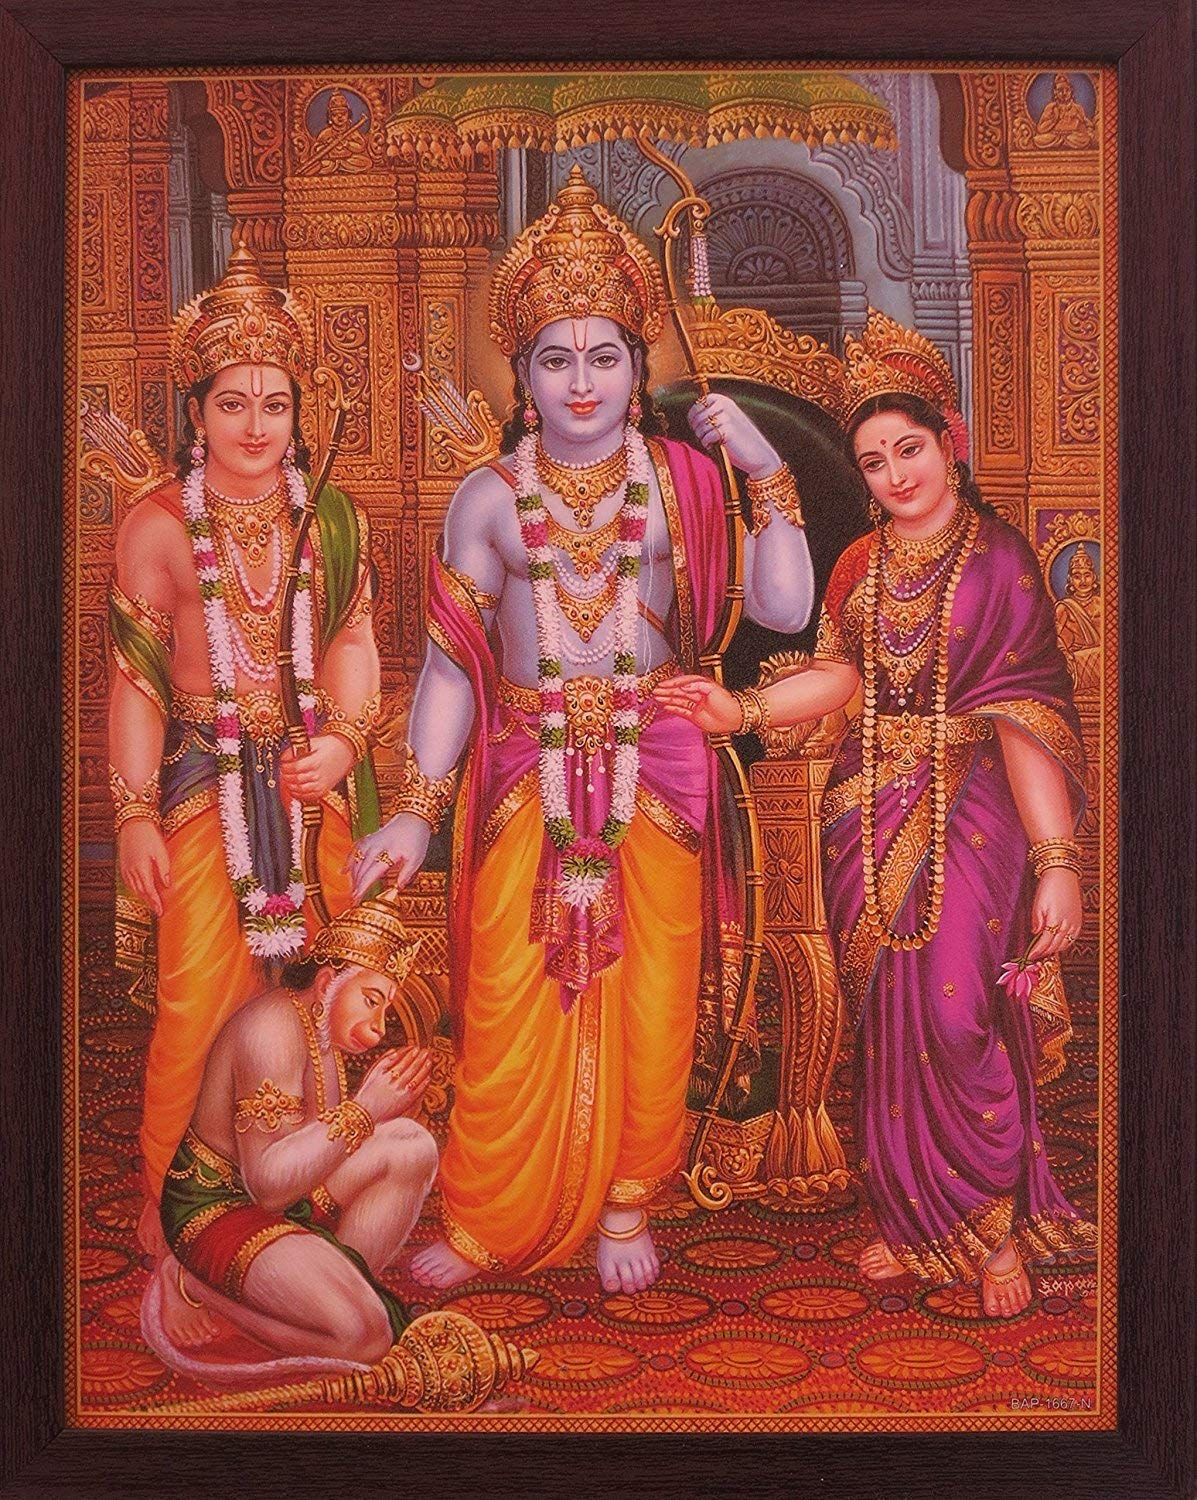 Lord Hanuman Sitting in Ram Darbar and Showing is Dedication Towards His Family, a Holy Religious Poster Painting with Frame for Hindu Religiousd and Gift Purpose